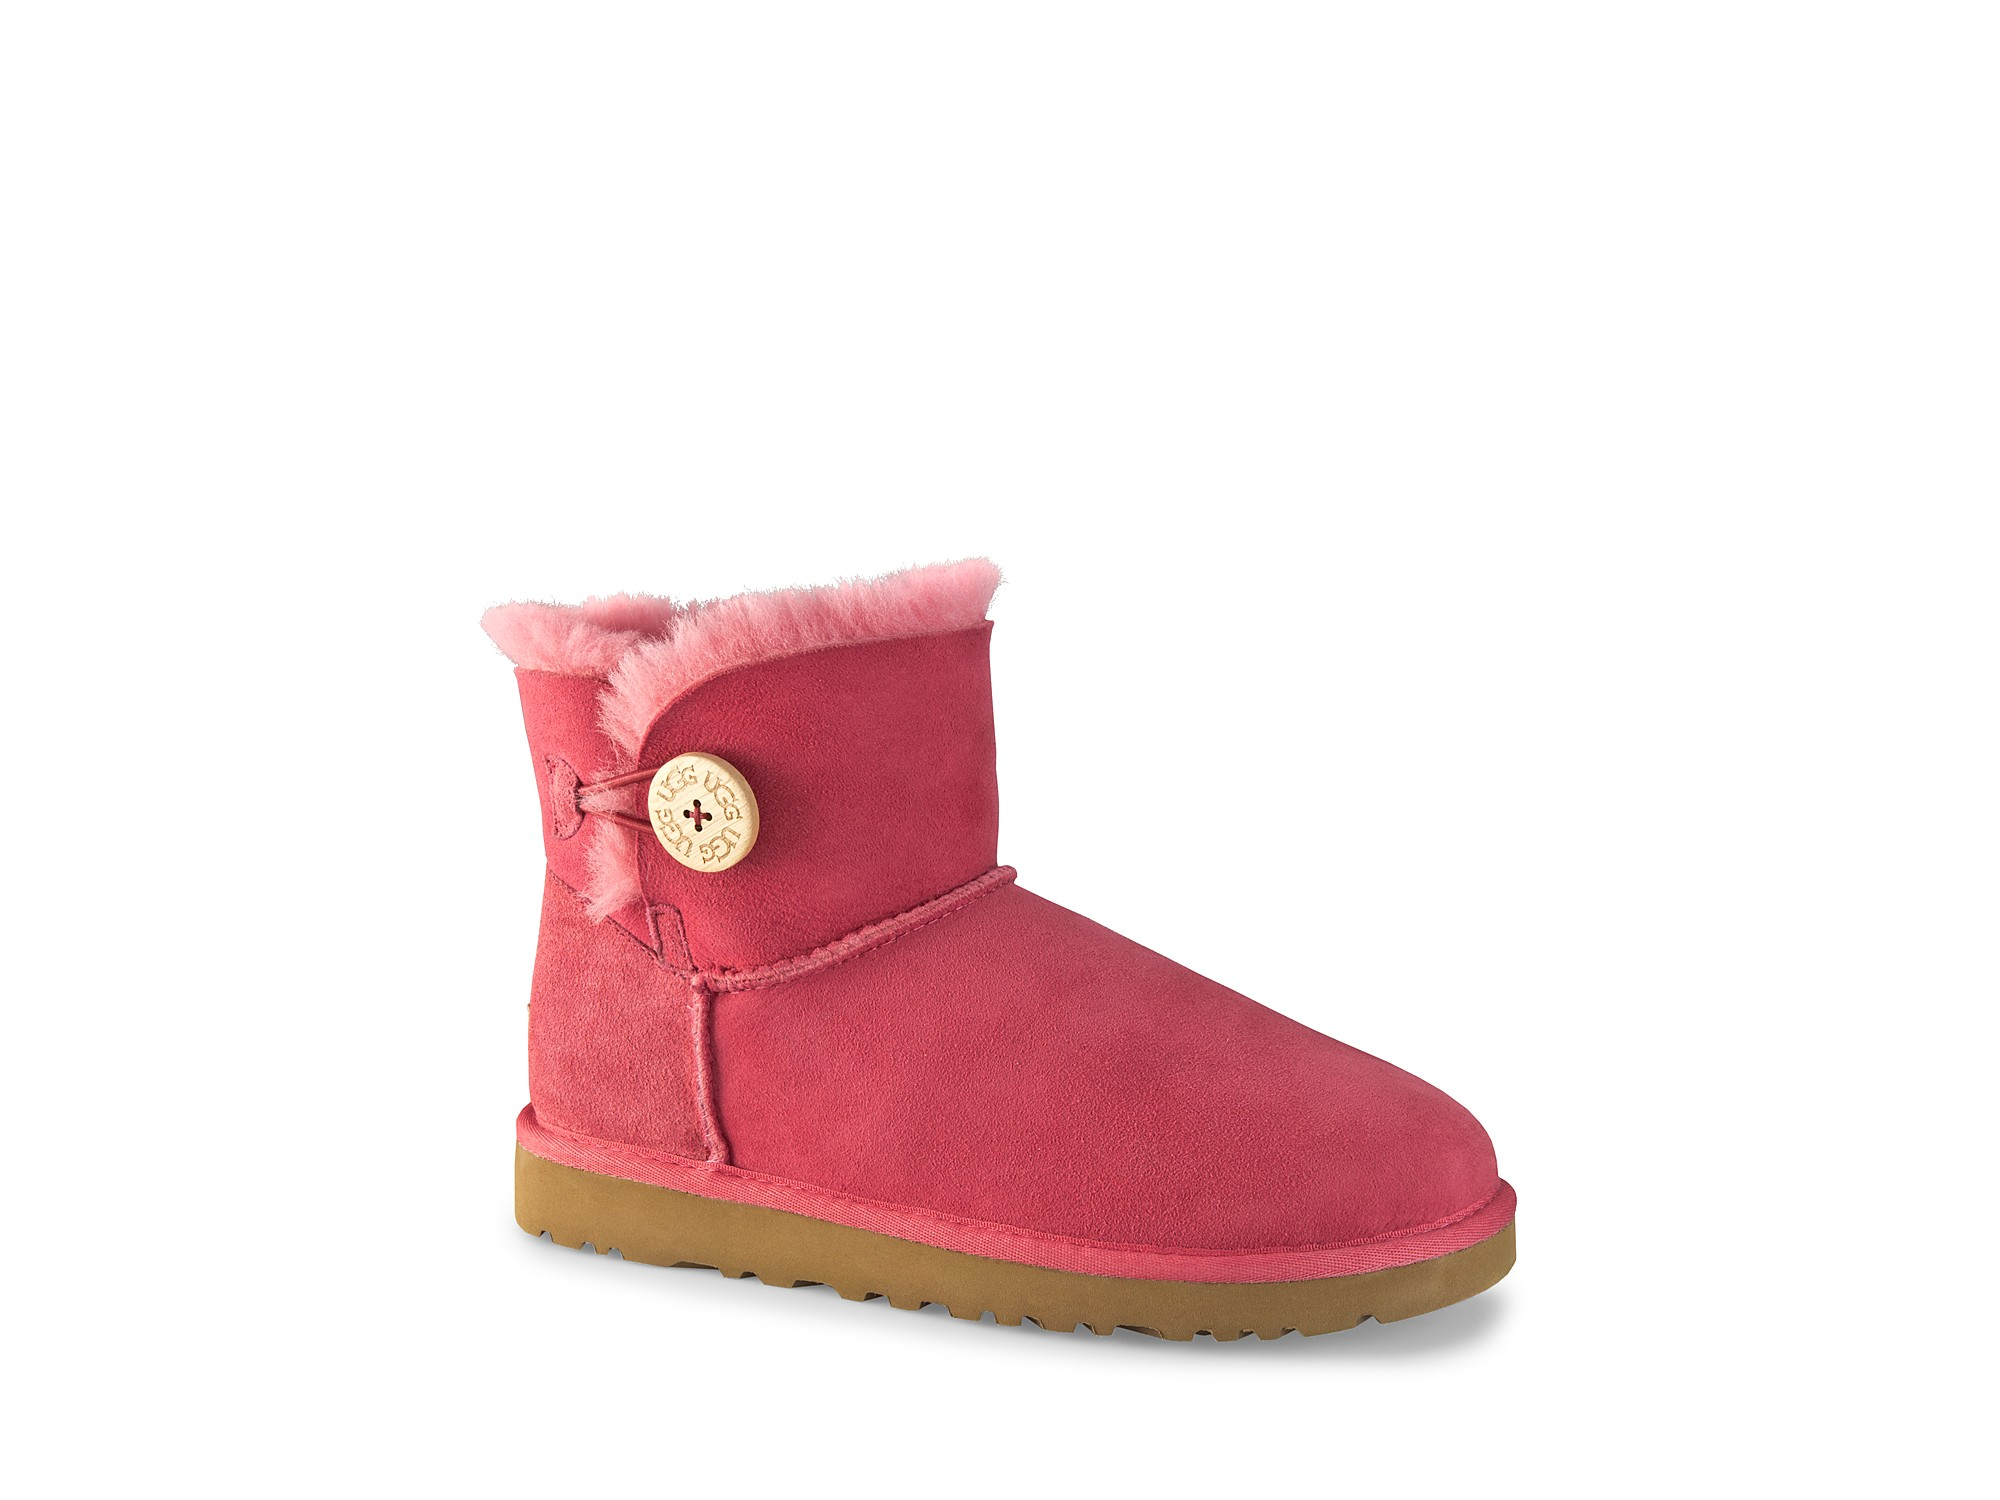 ugg boots mini bailey button in gray tearose coral lyst. Black Bedroom Furniture Sets. Home Design Ideas